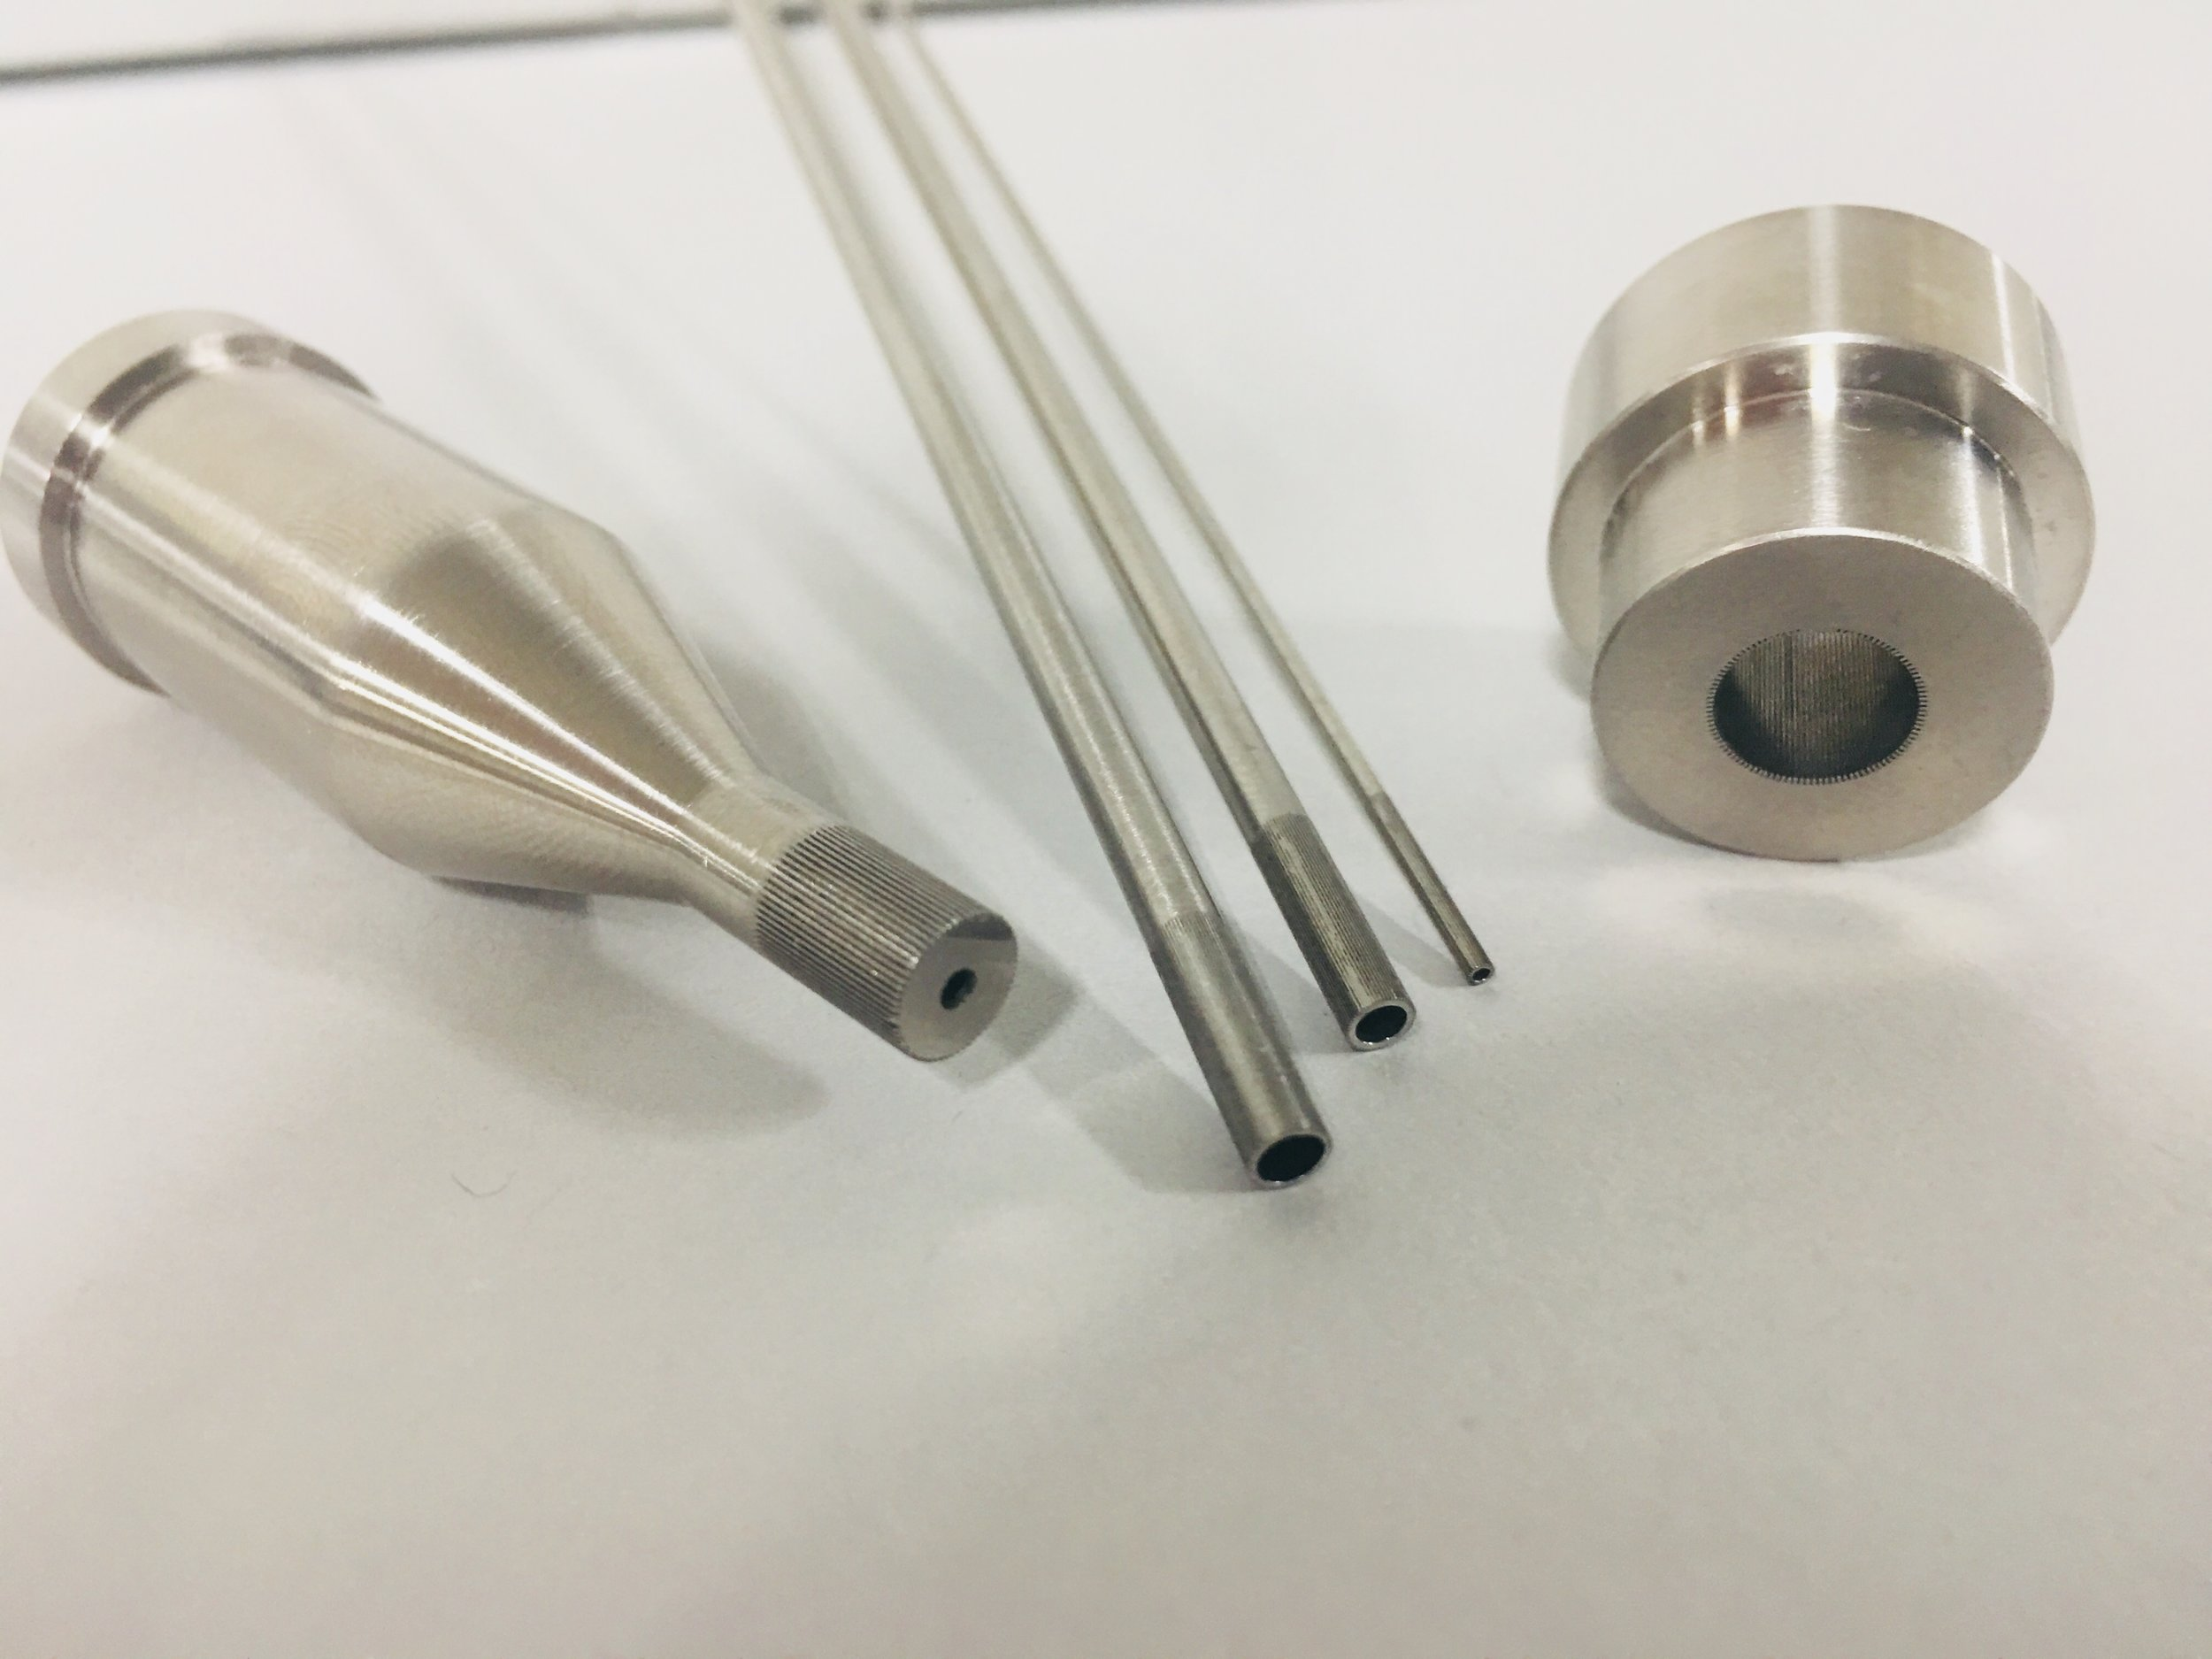 Custom Solutions - Inner and outer extrusion dies available for custom solutions in as little as 2-4 weeks. Contact us to learn more.